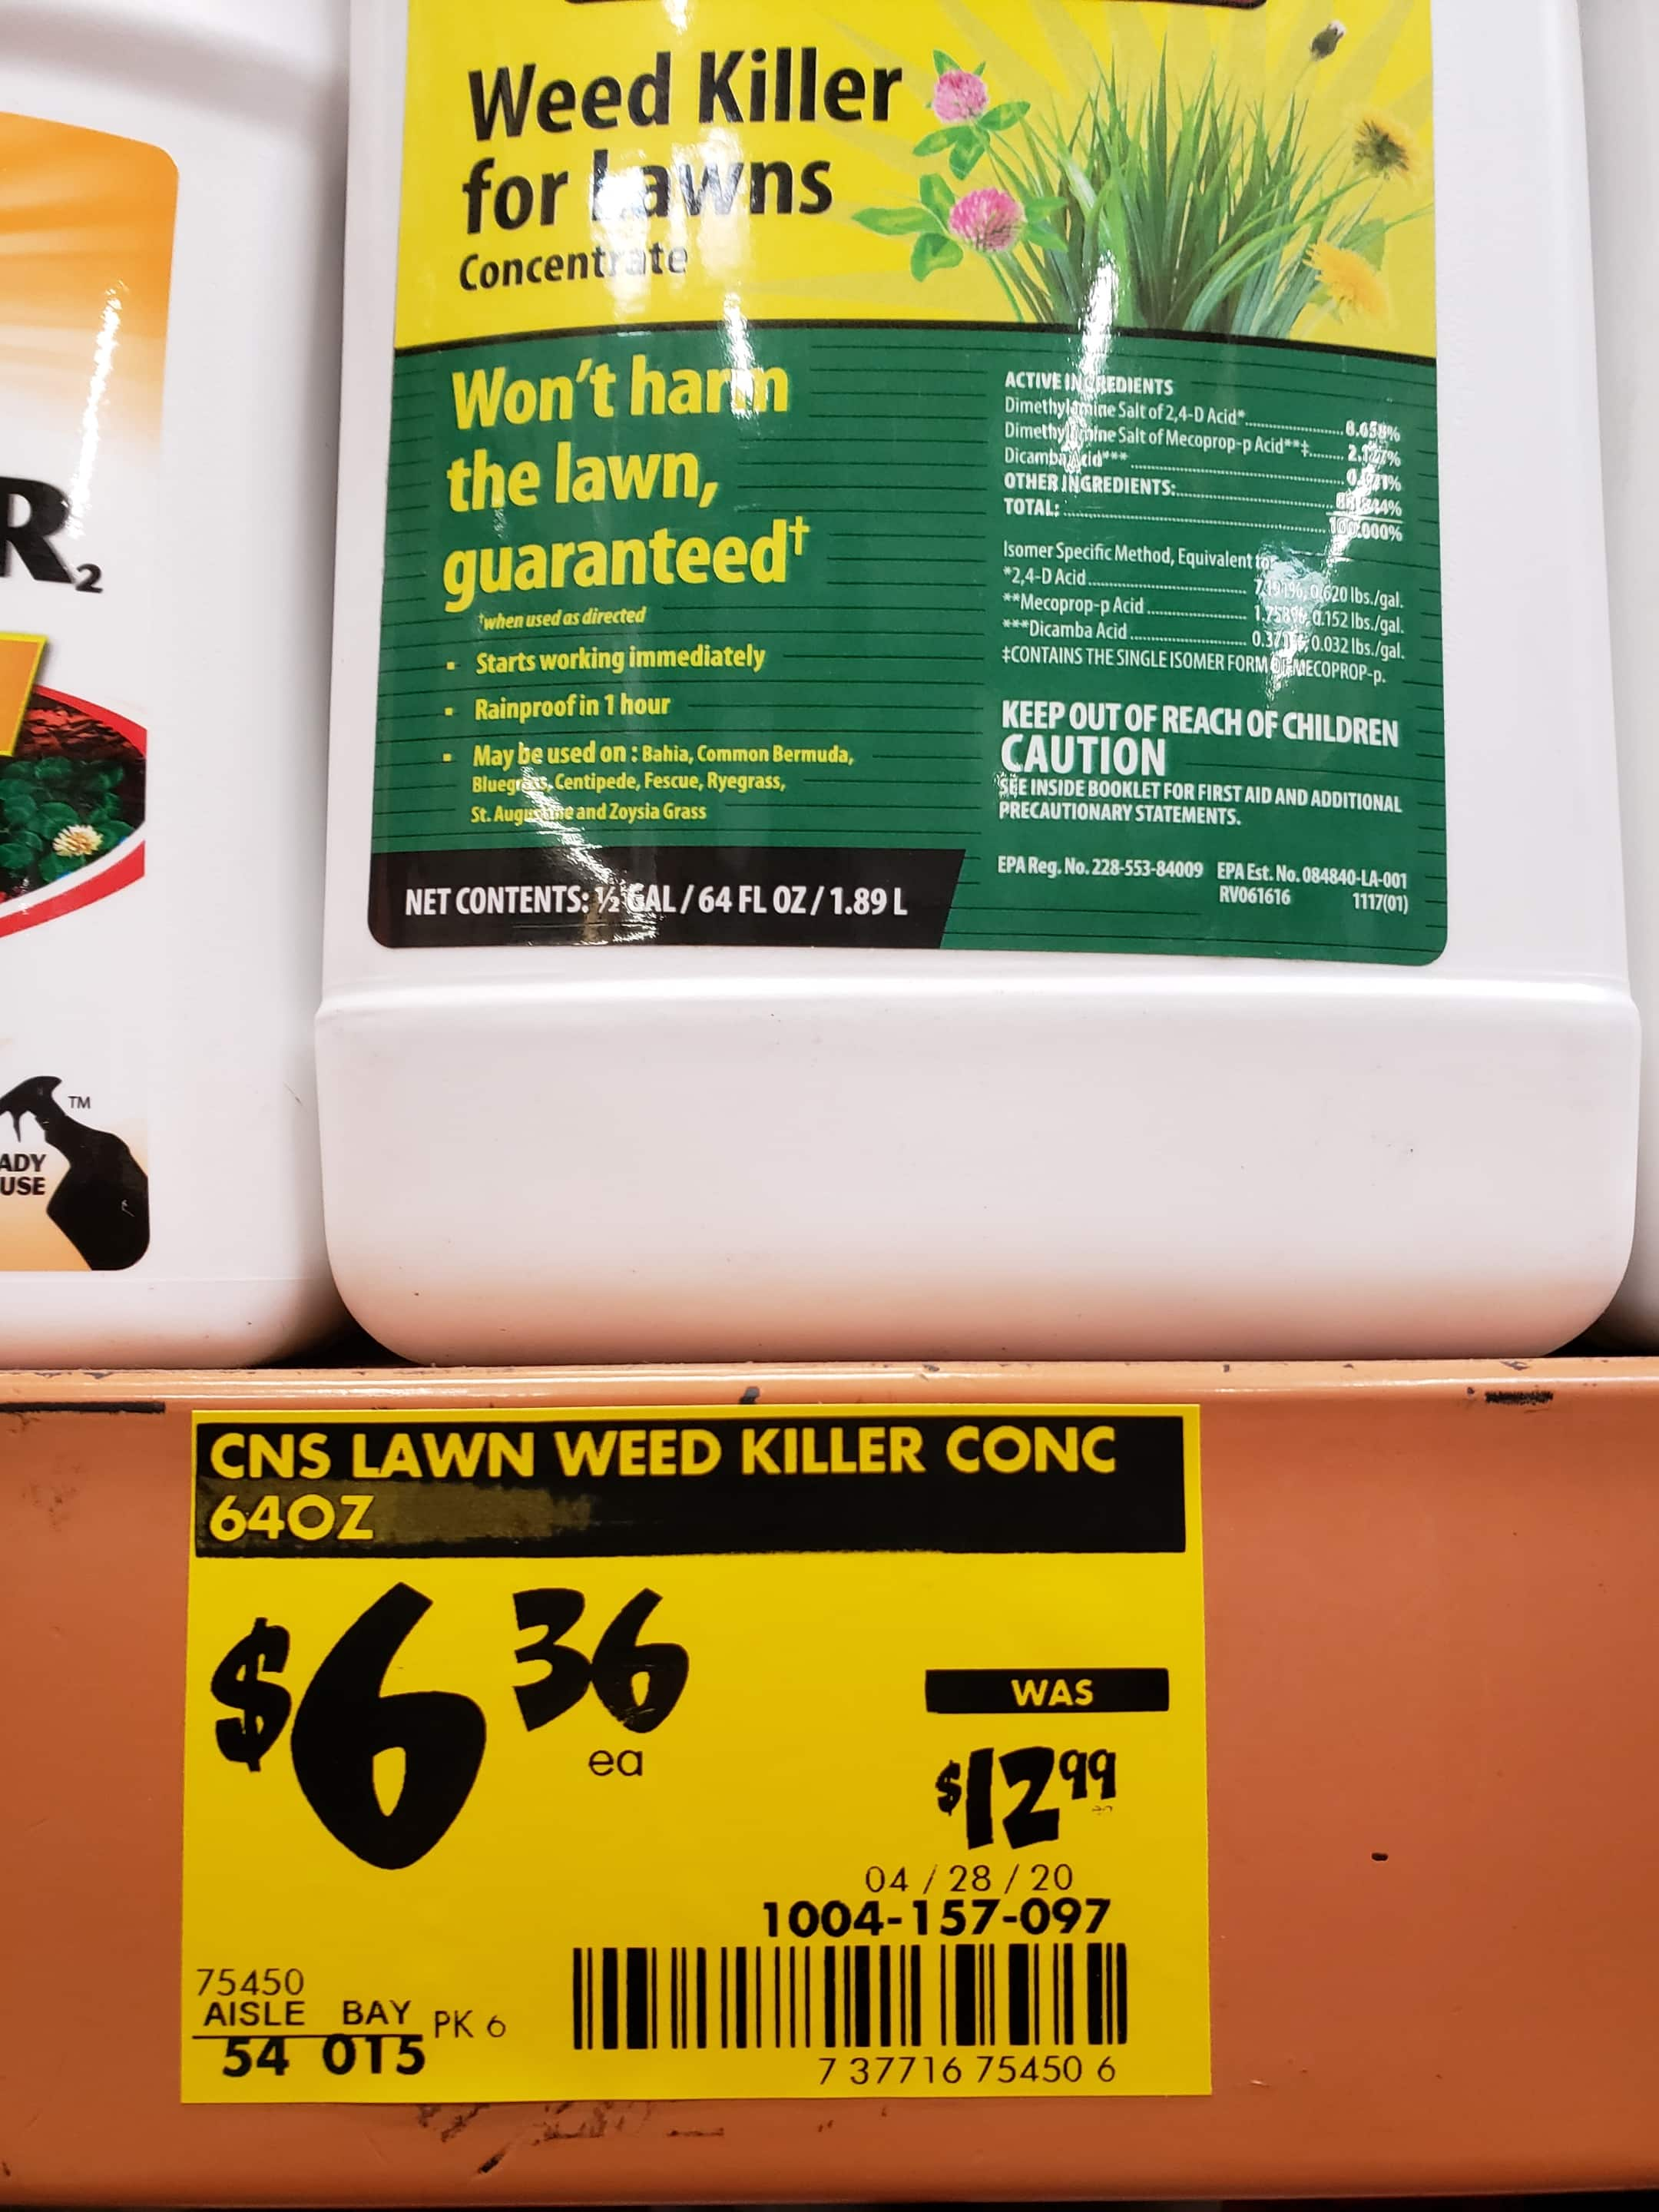 YMMV *B&M ONLY* Compare-N-Save-64-oz-Weed-Killer-for-Lawns-Concentrate-Liquid-Herbicide for $6.36